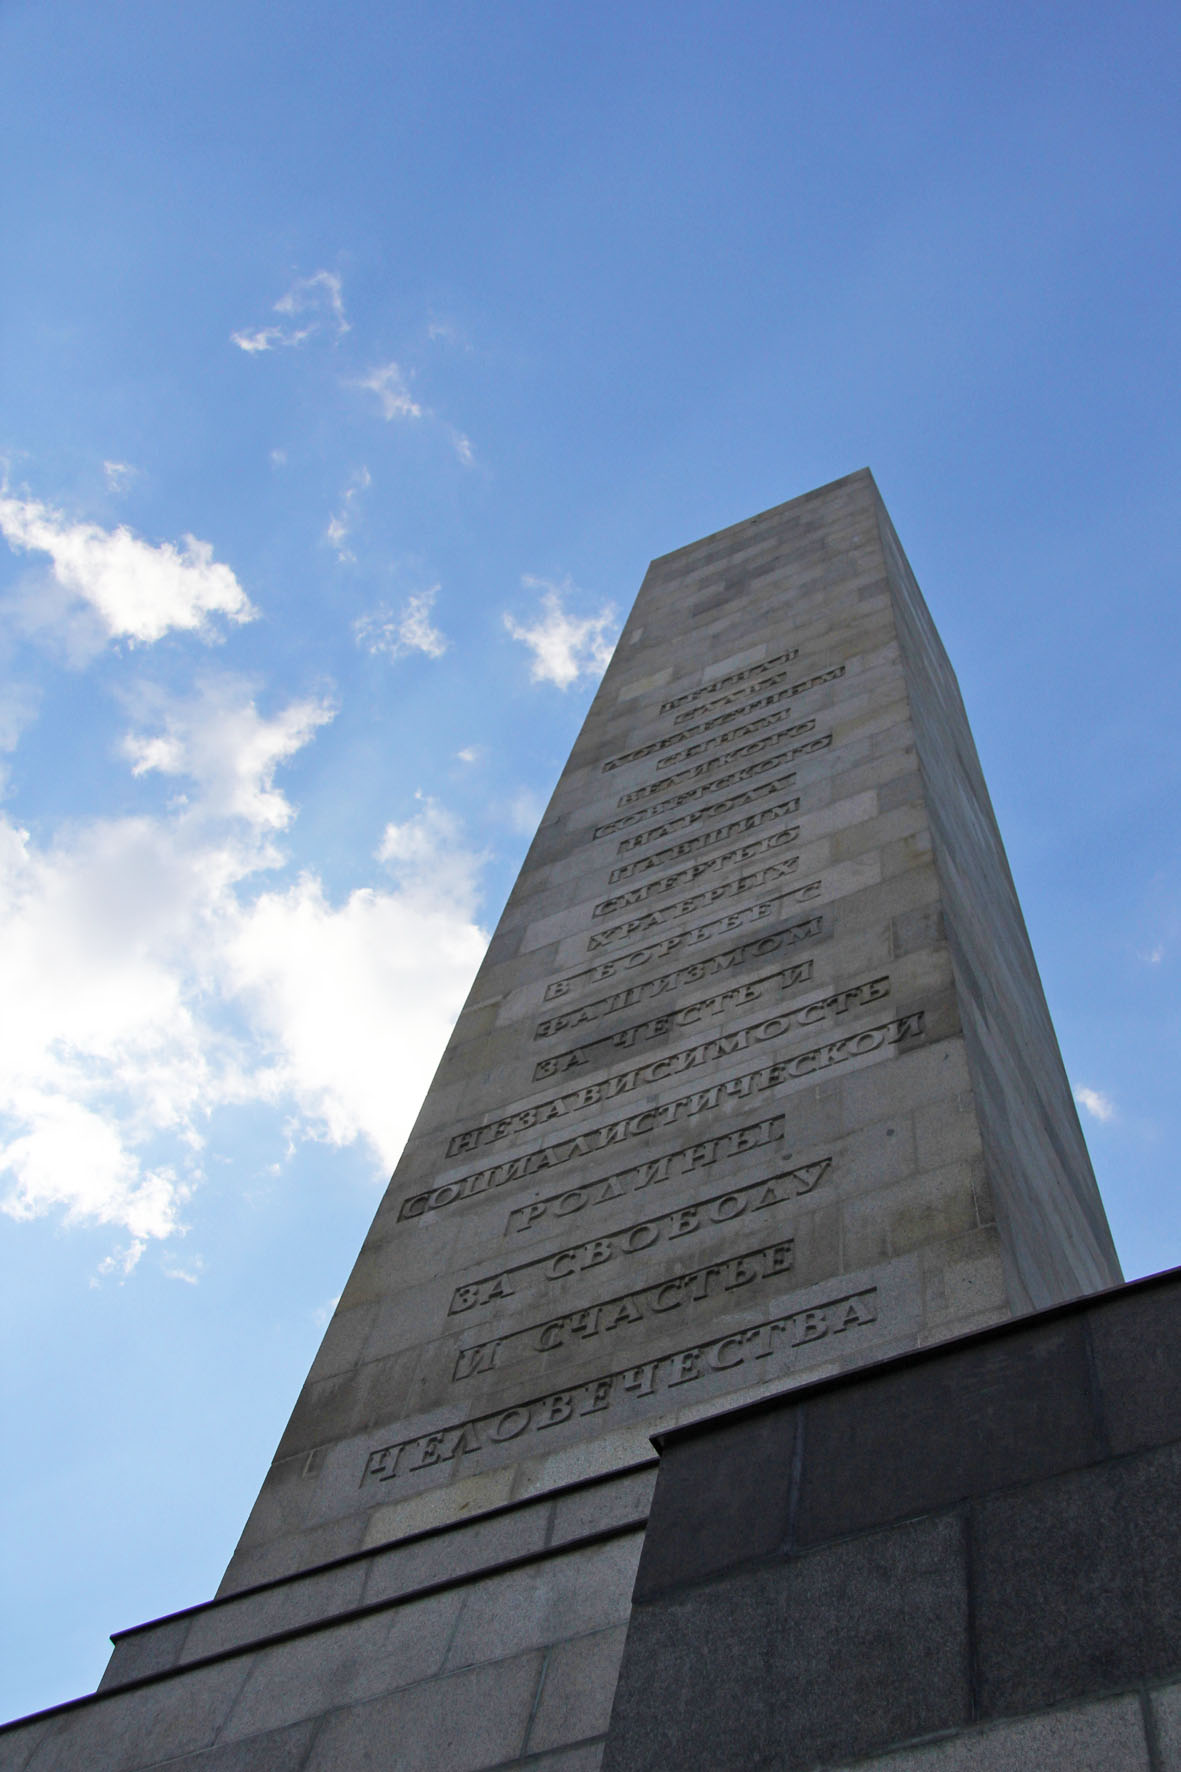 Obelisk at Soviet Memorial in Schönholzer Heide in Berlin